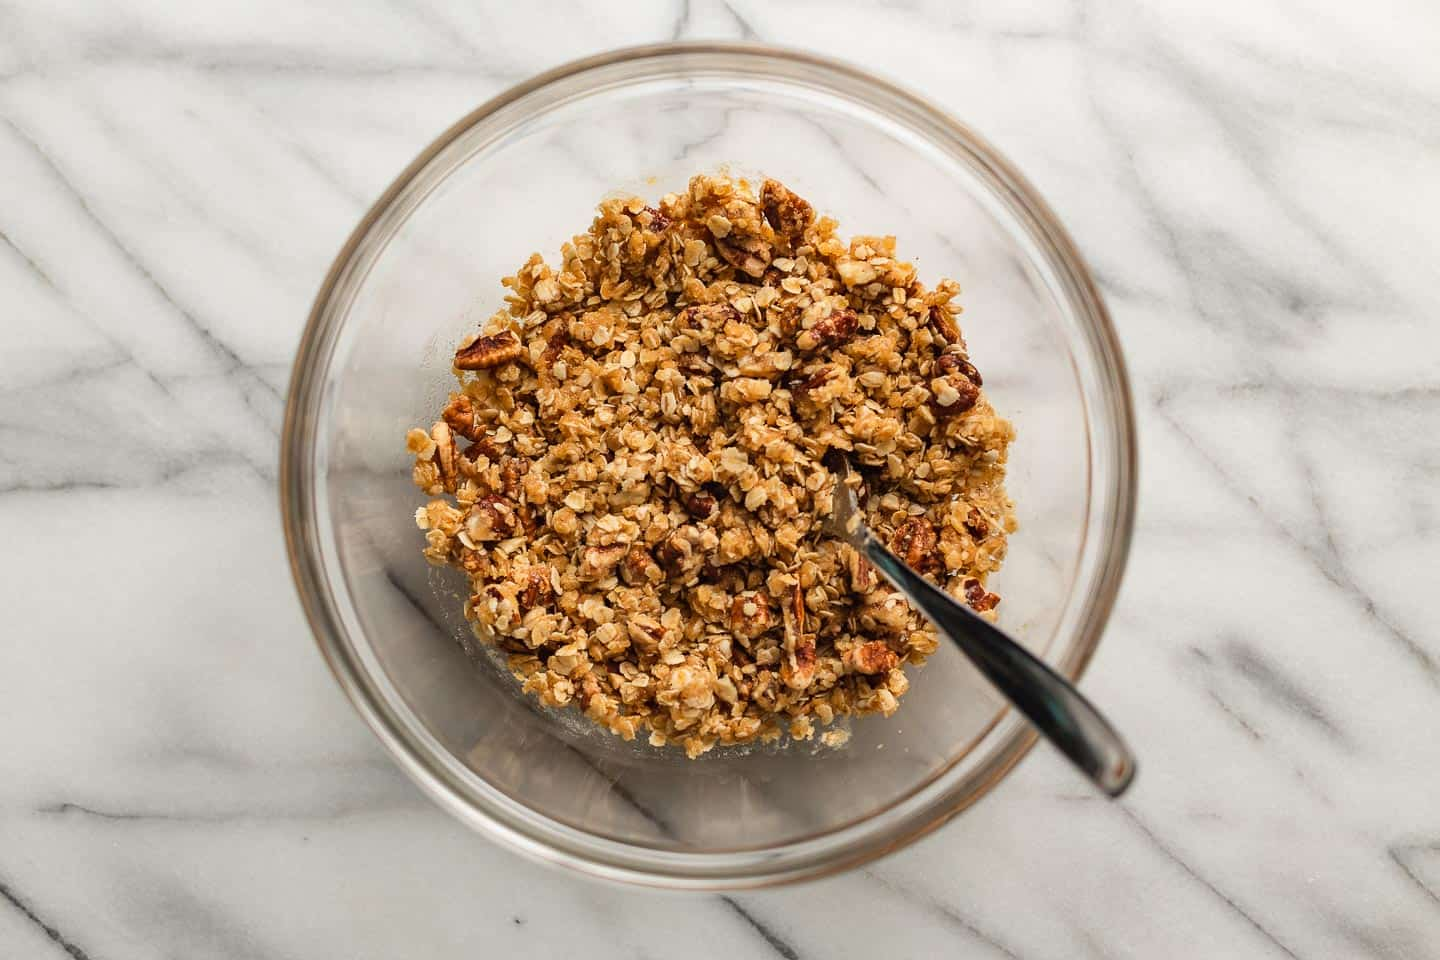 Peach crisp topping mixed in a bowl.